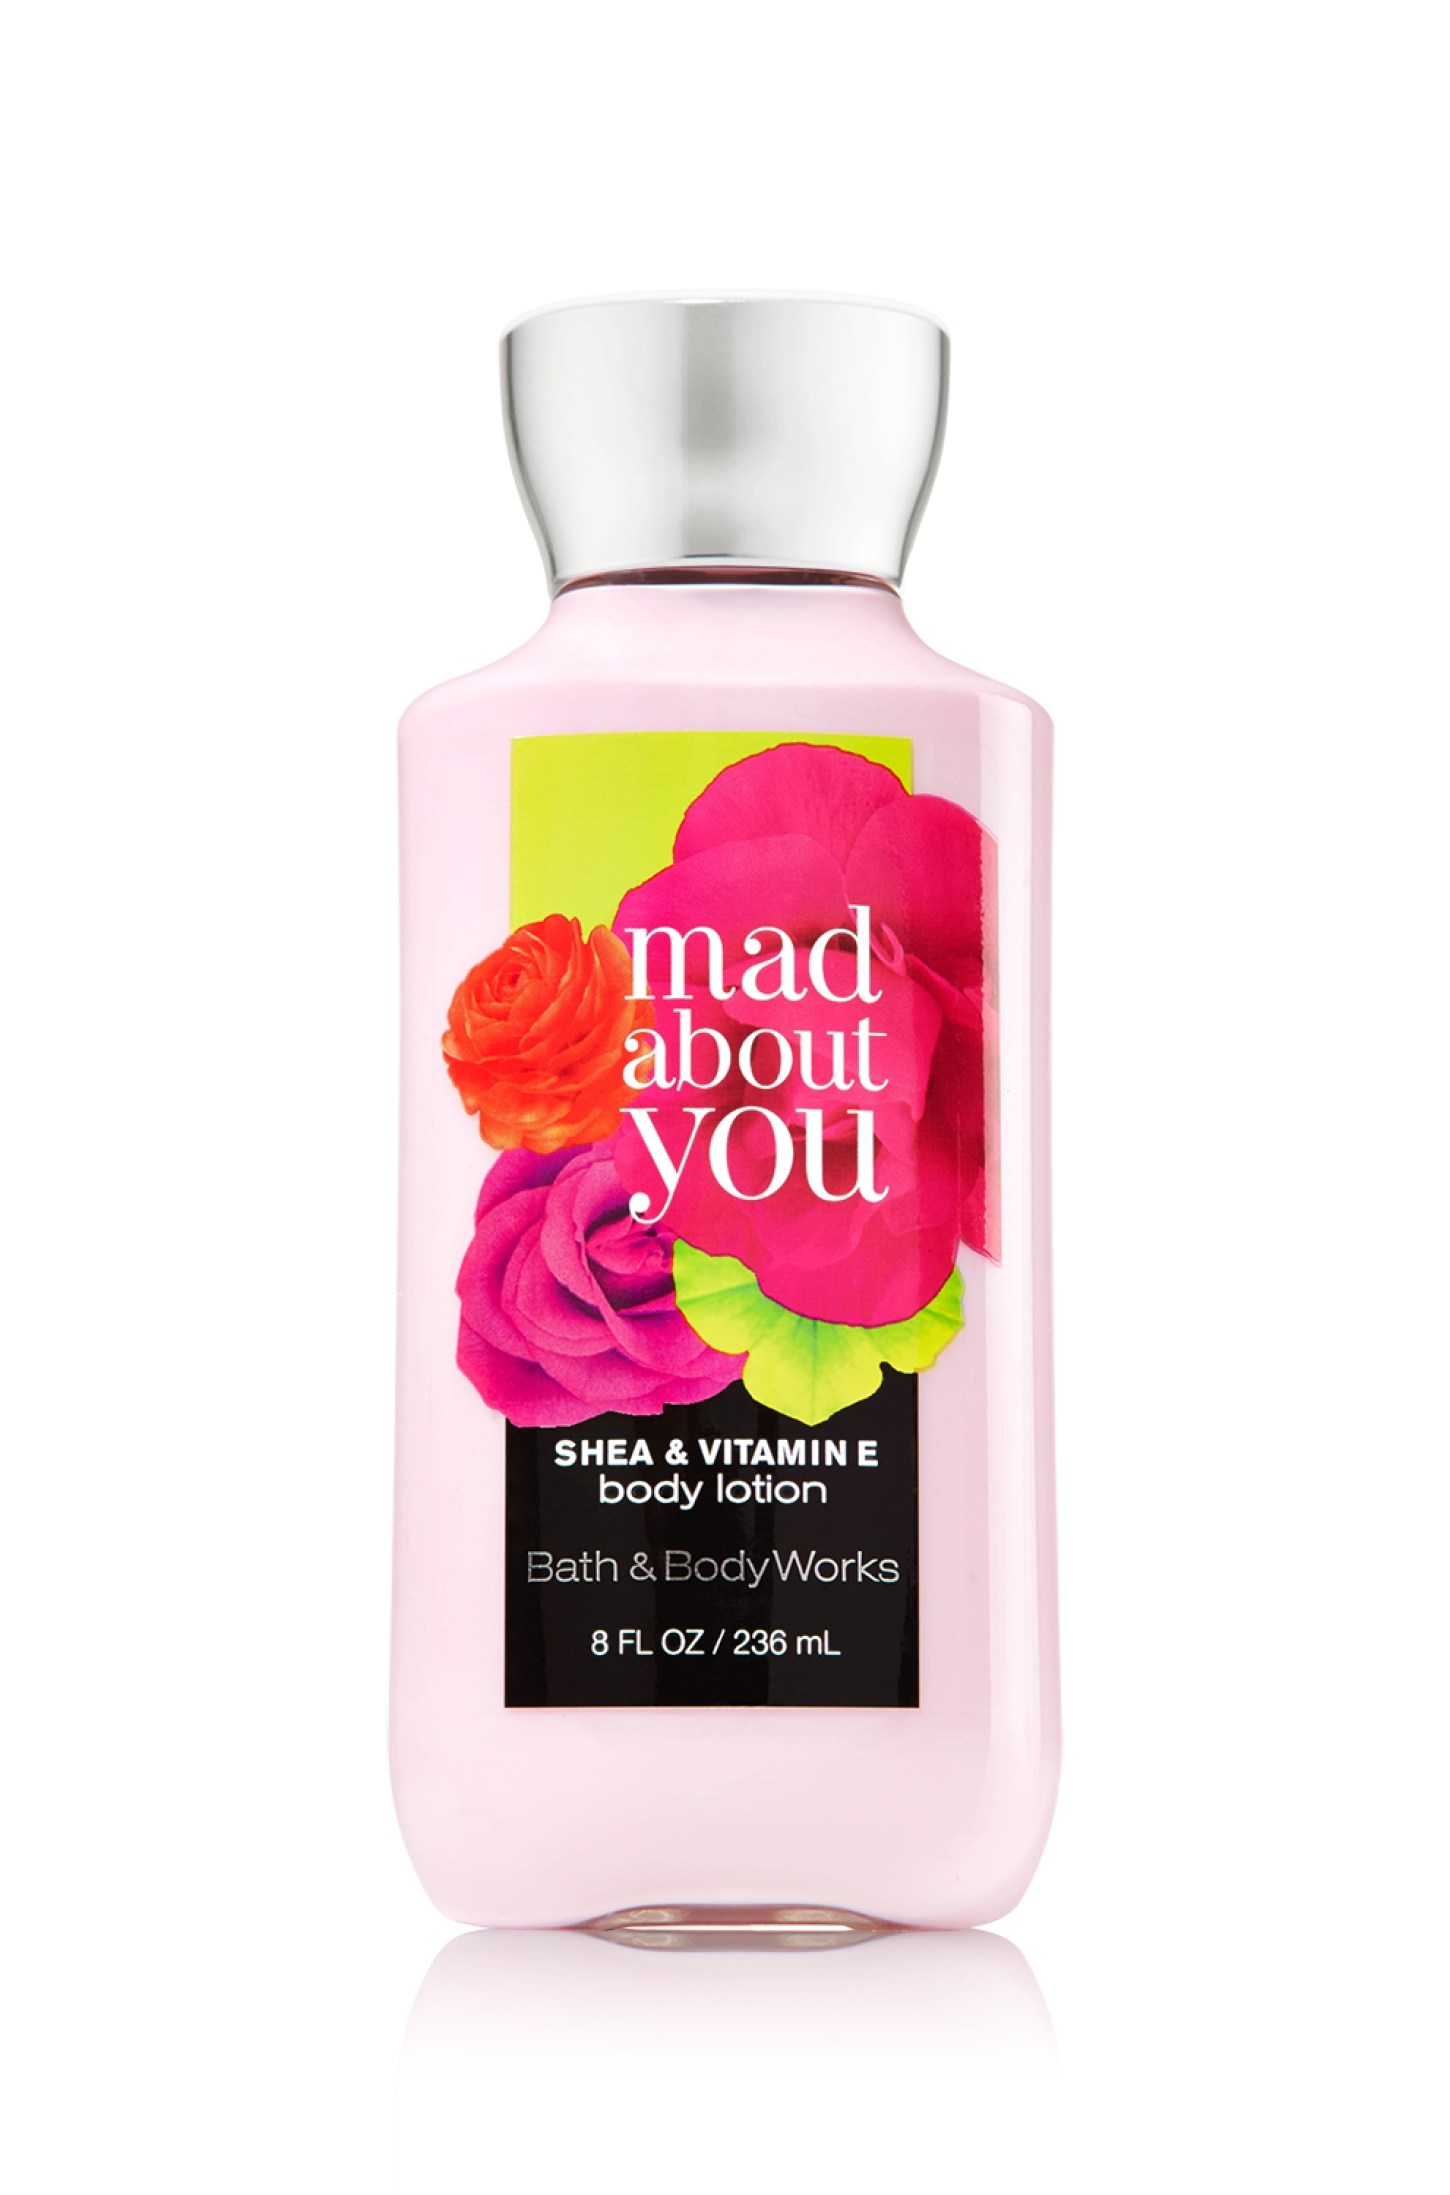 Bath and Body Works Body Lotion 236 g กลิ่นมาใหม่ Mad About You